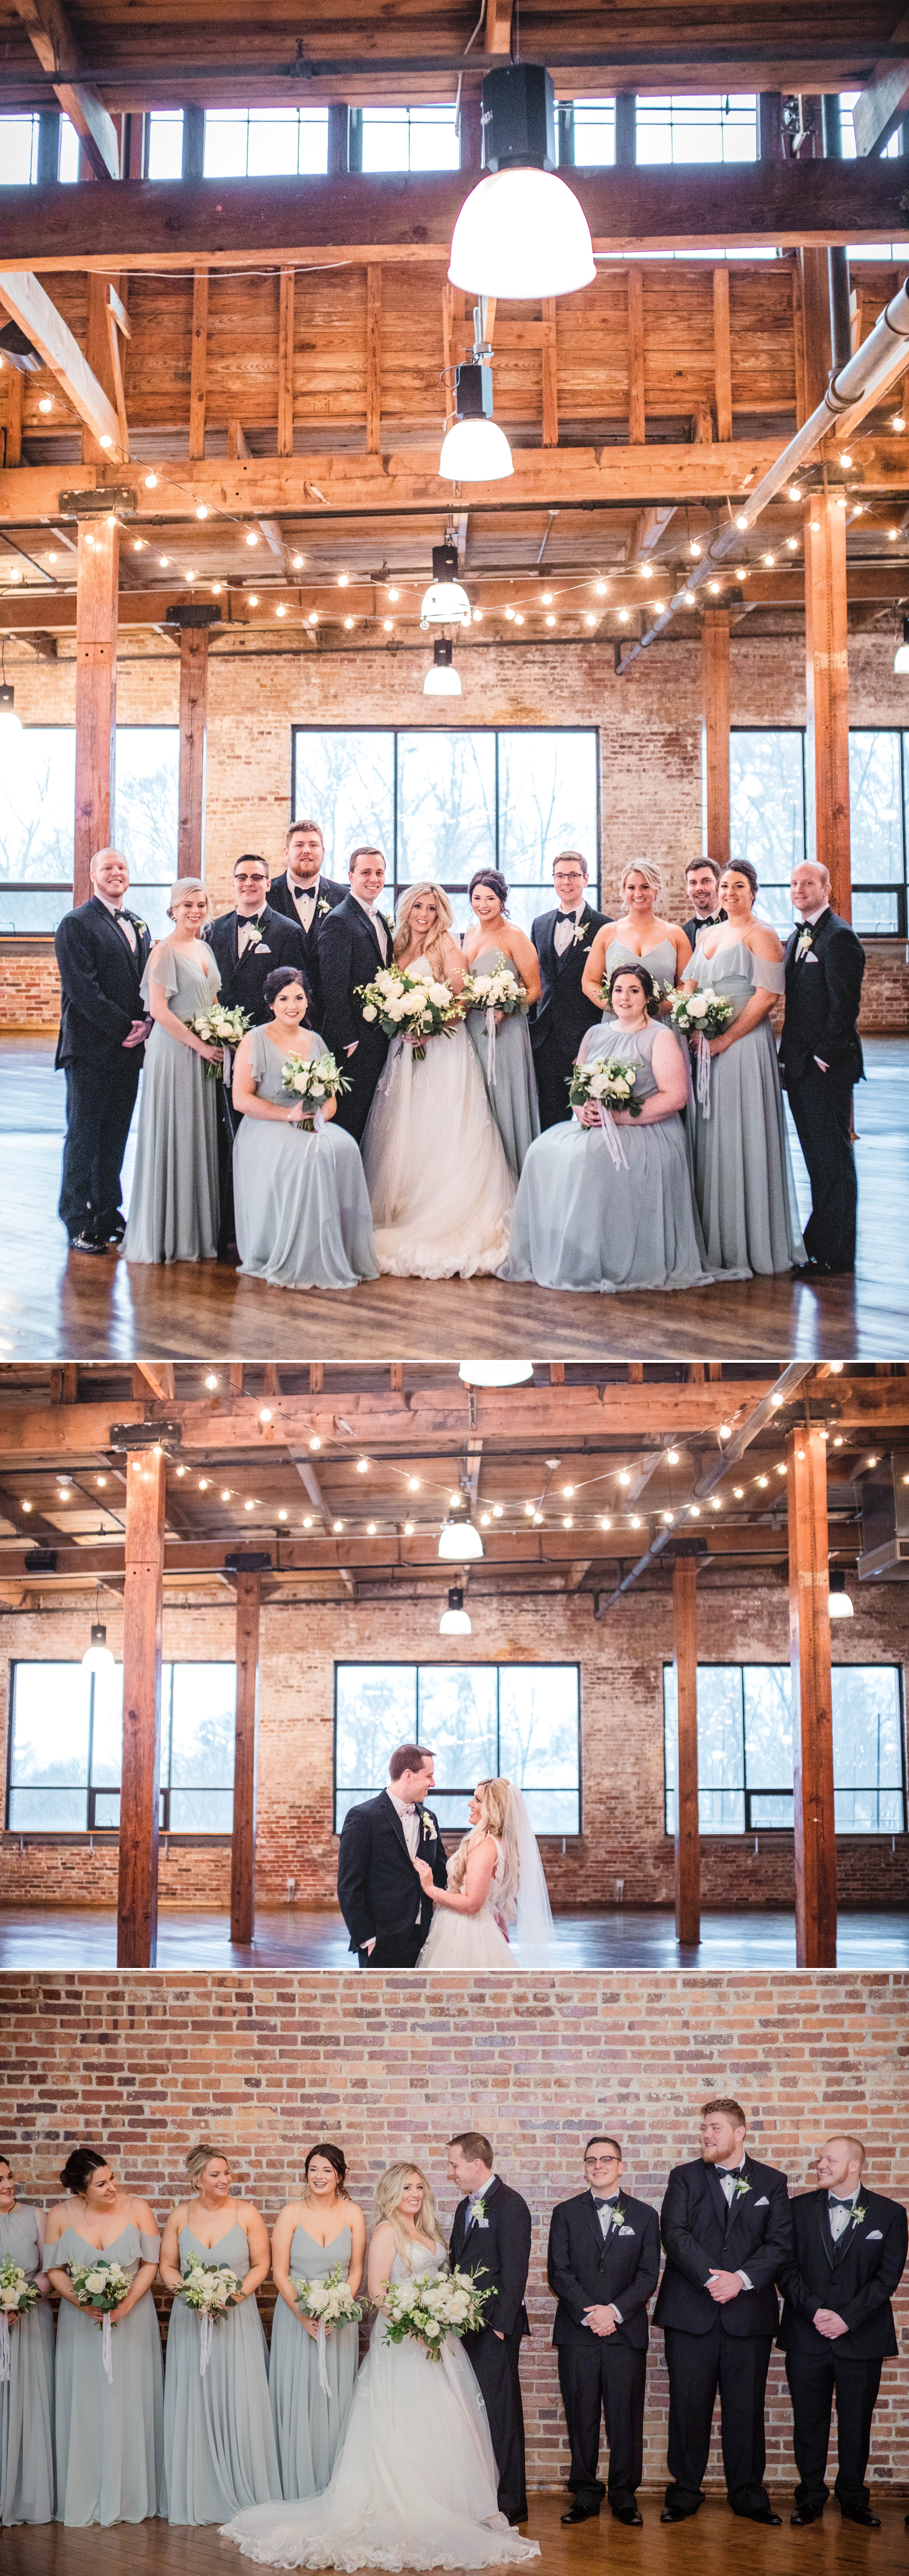 biltwell event center wedding party portraits